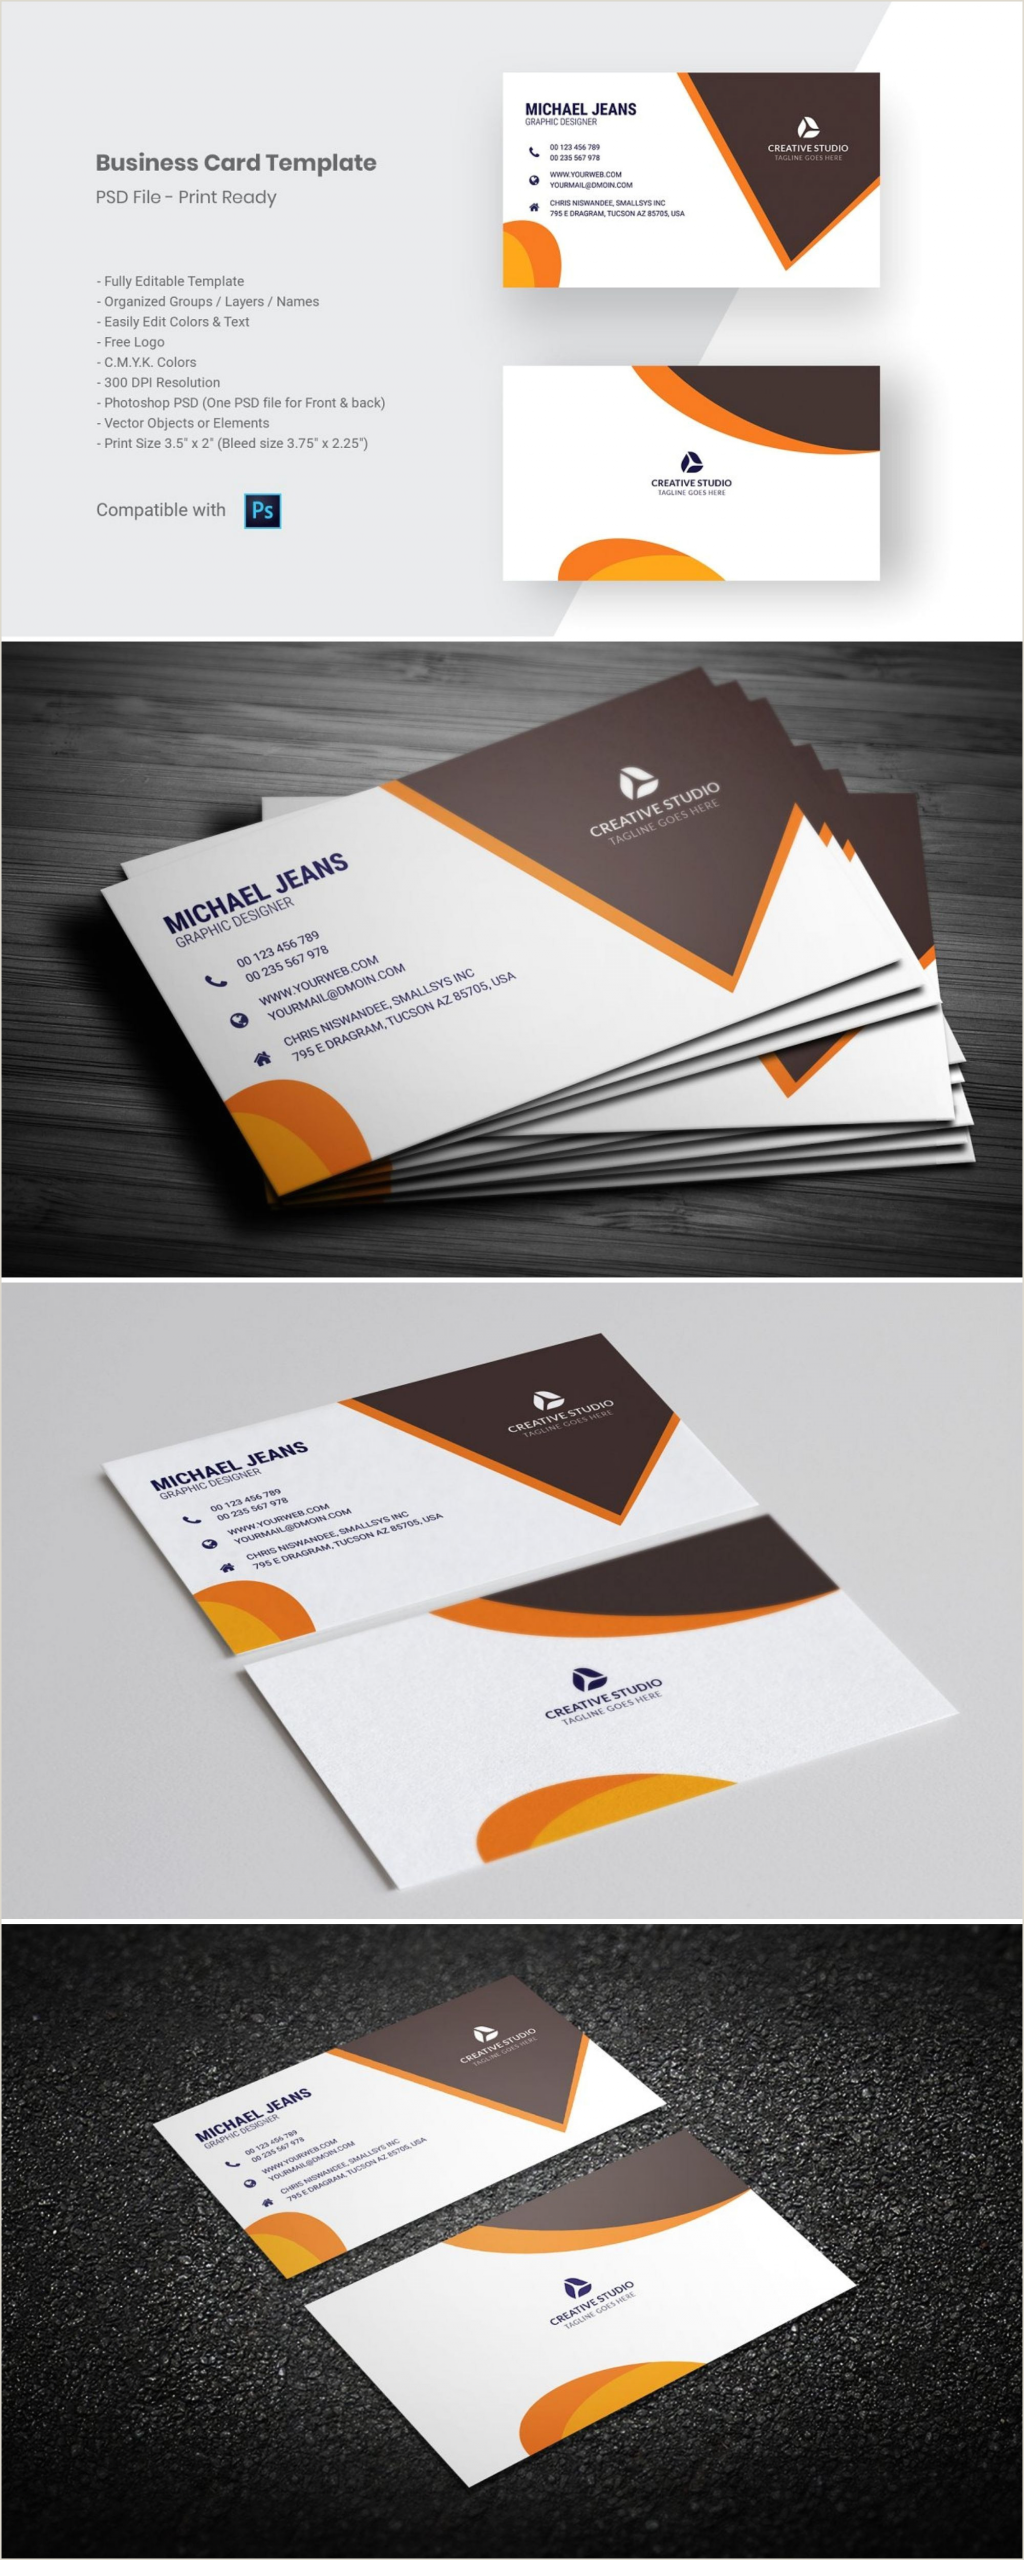 What To Put On Personal Business Cards Modern Business Card Template